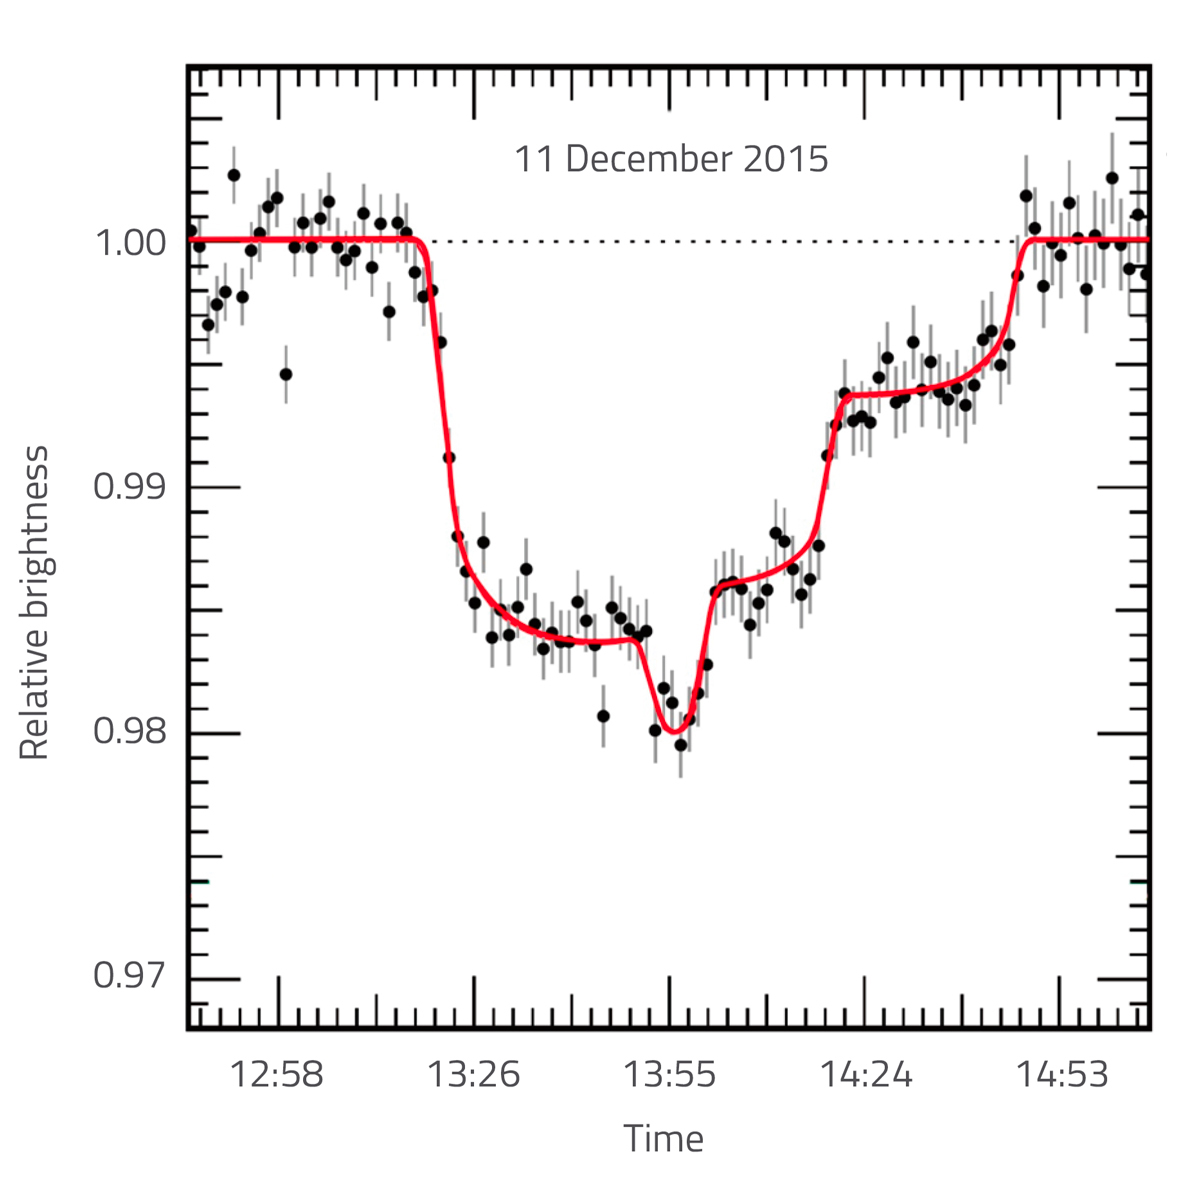 Figure 1: Graph showing the changing brightness of the red dwarf star TRAPPIST-1, which is caused by three exoplanets passing in front of the star in quick succession